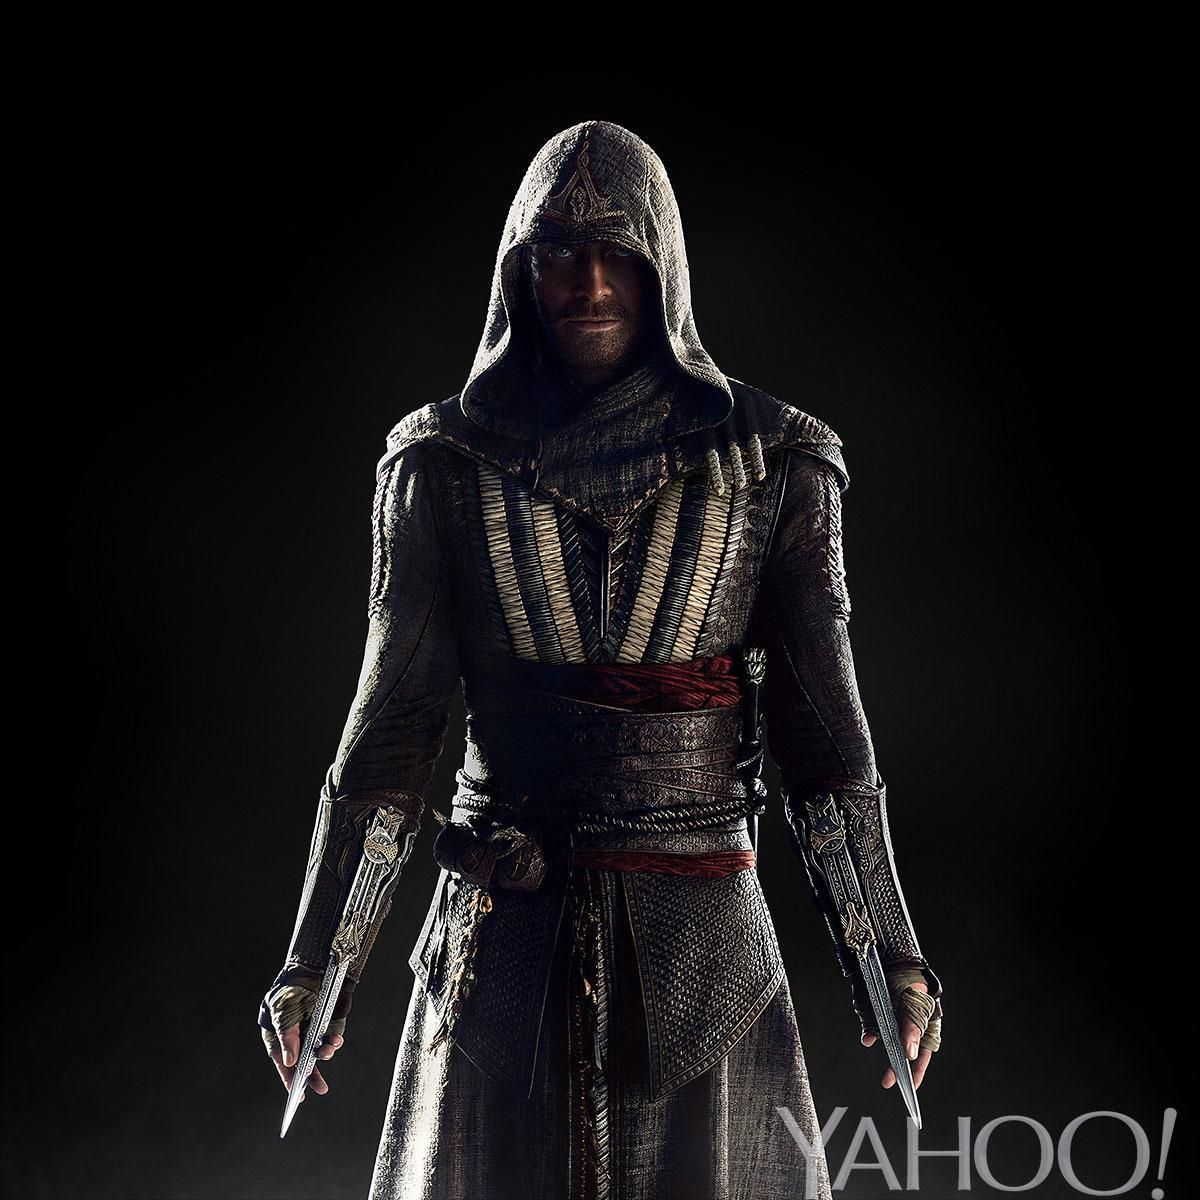 Michael Fassbender sneak peek, from the upcoming Assassin's Creed movie!